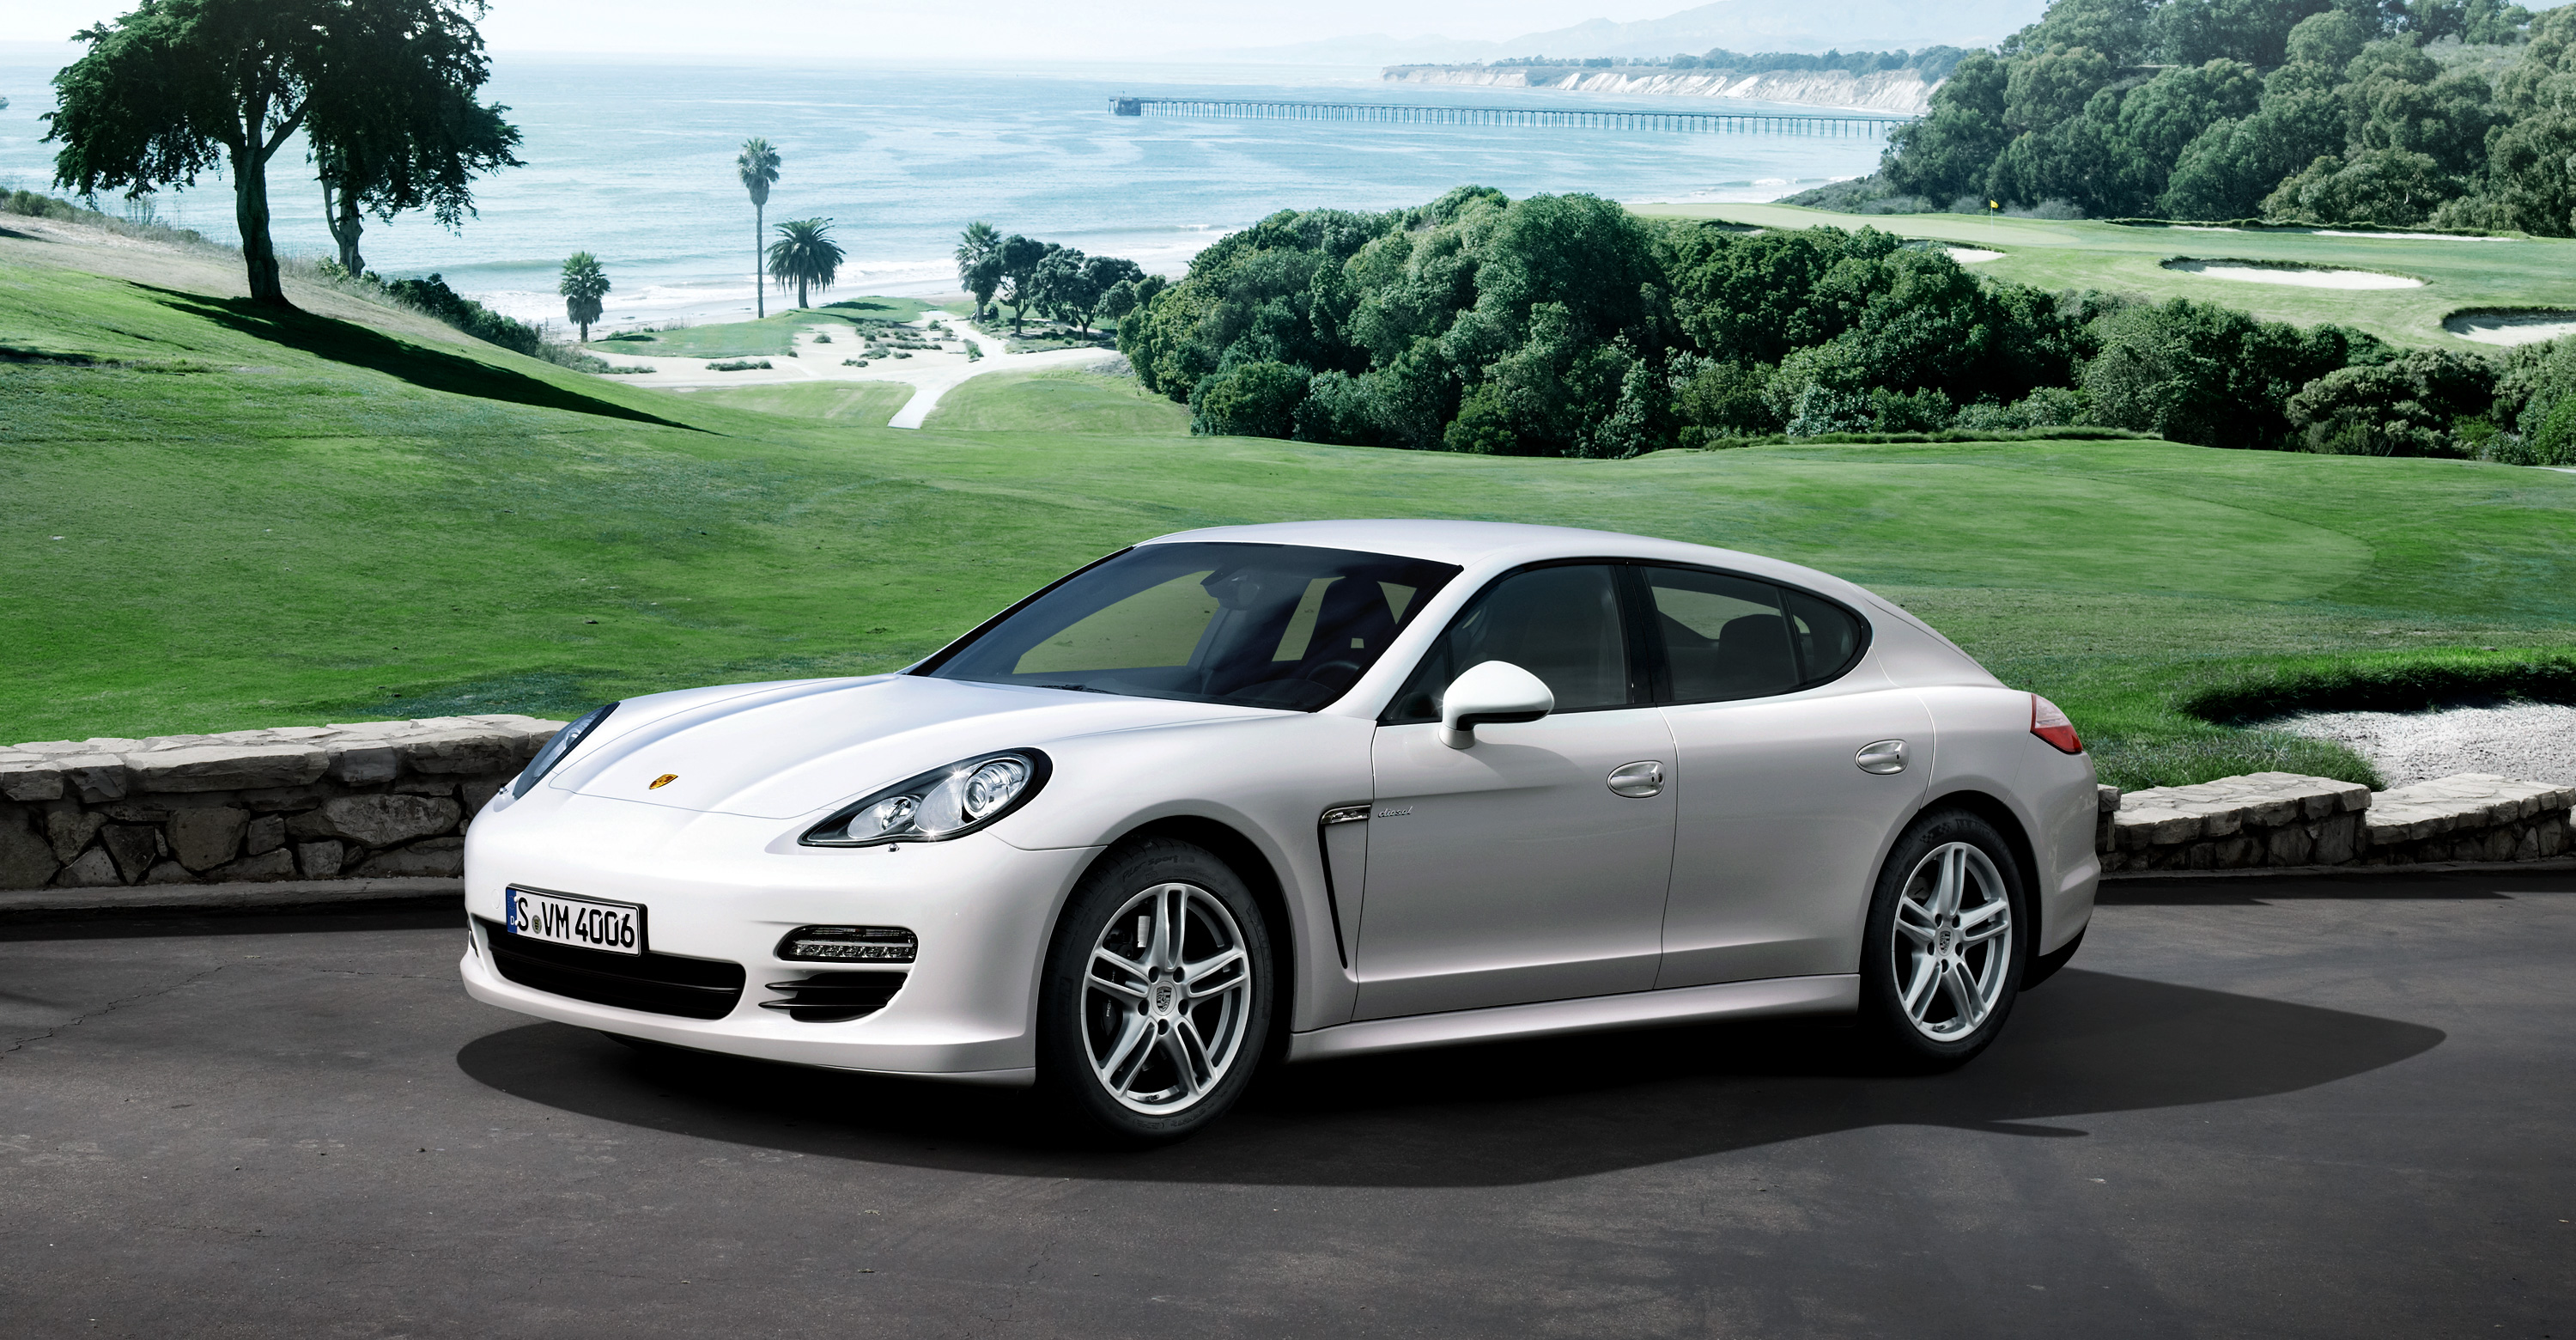 New Porsche Panamera Wallpapers Full Hd Pictures